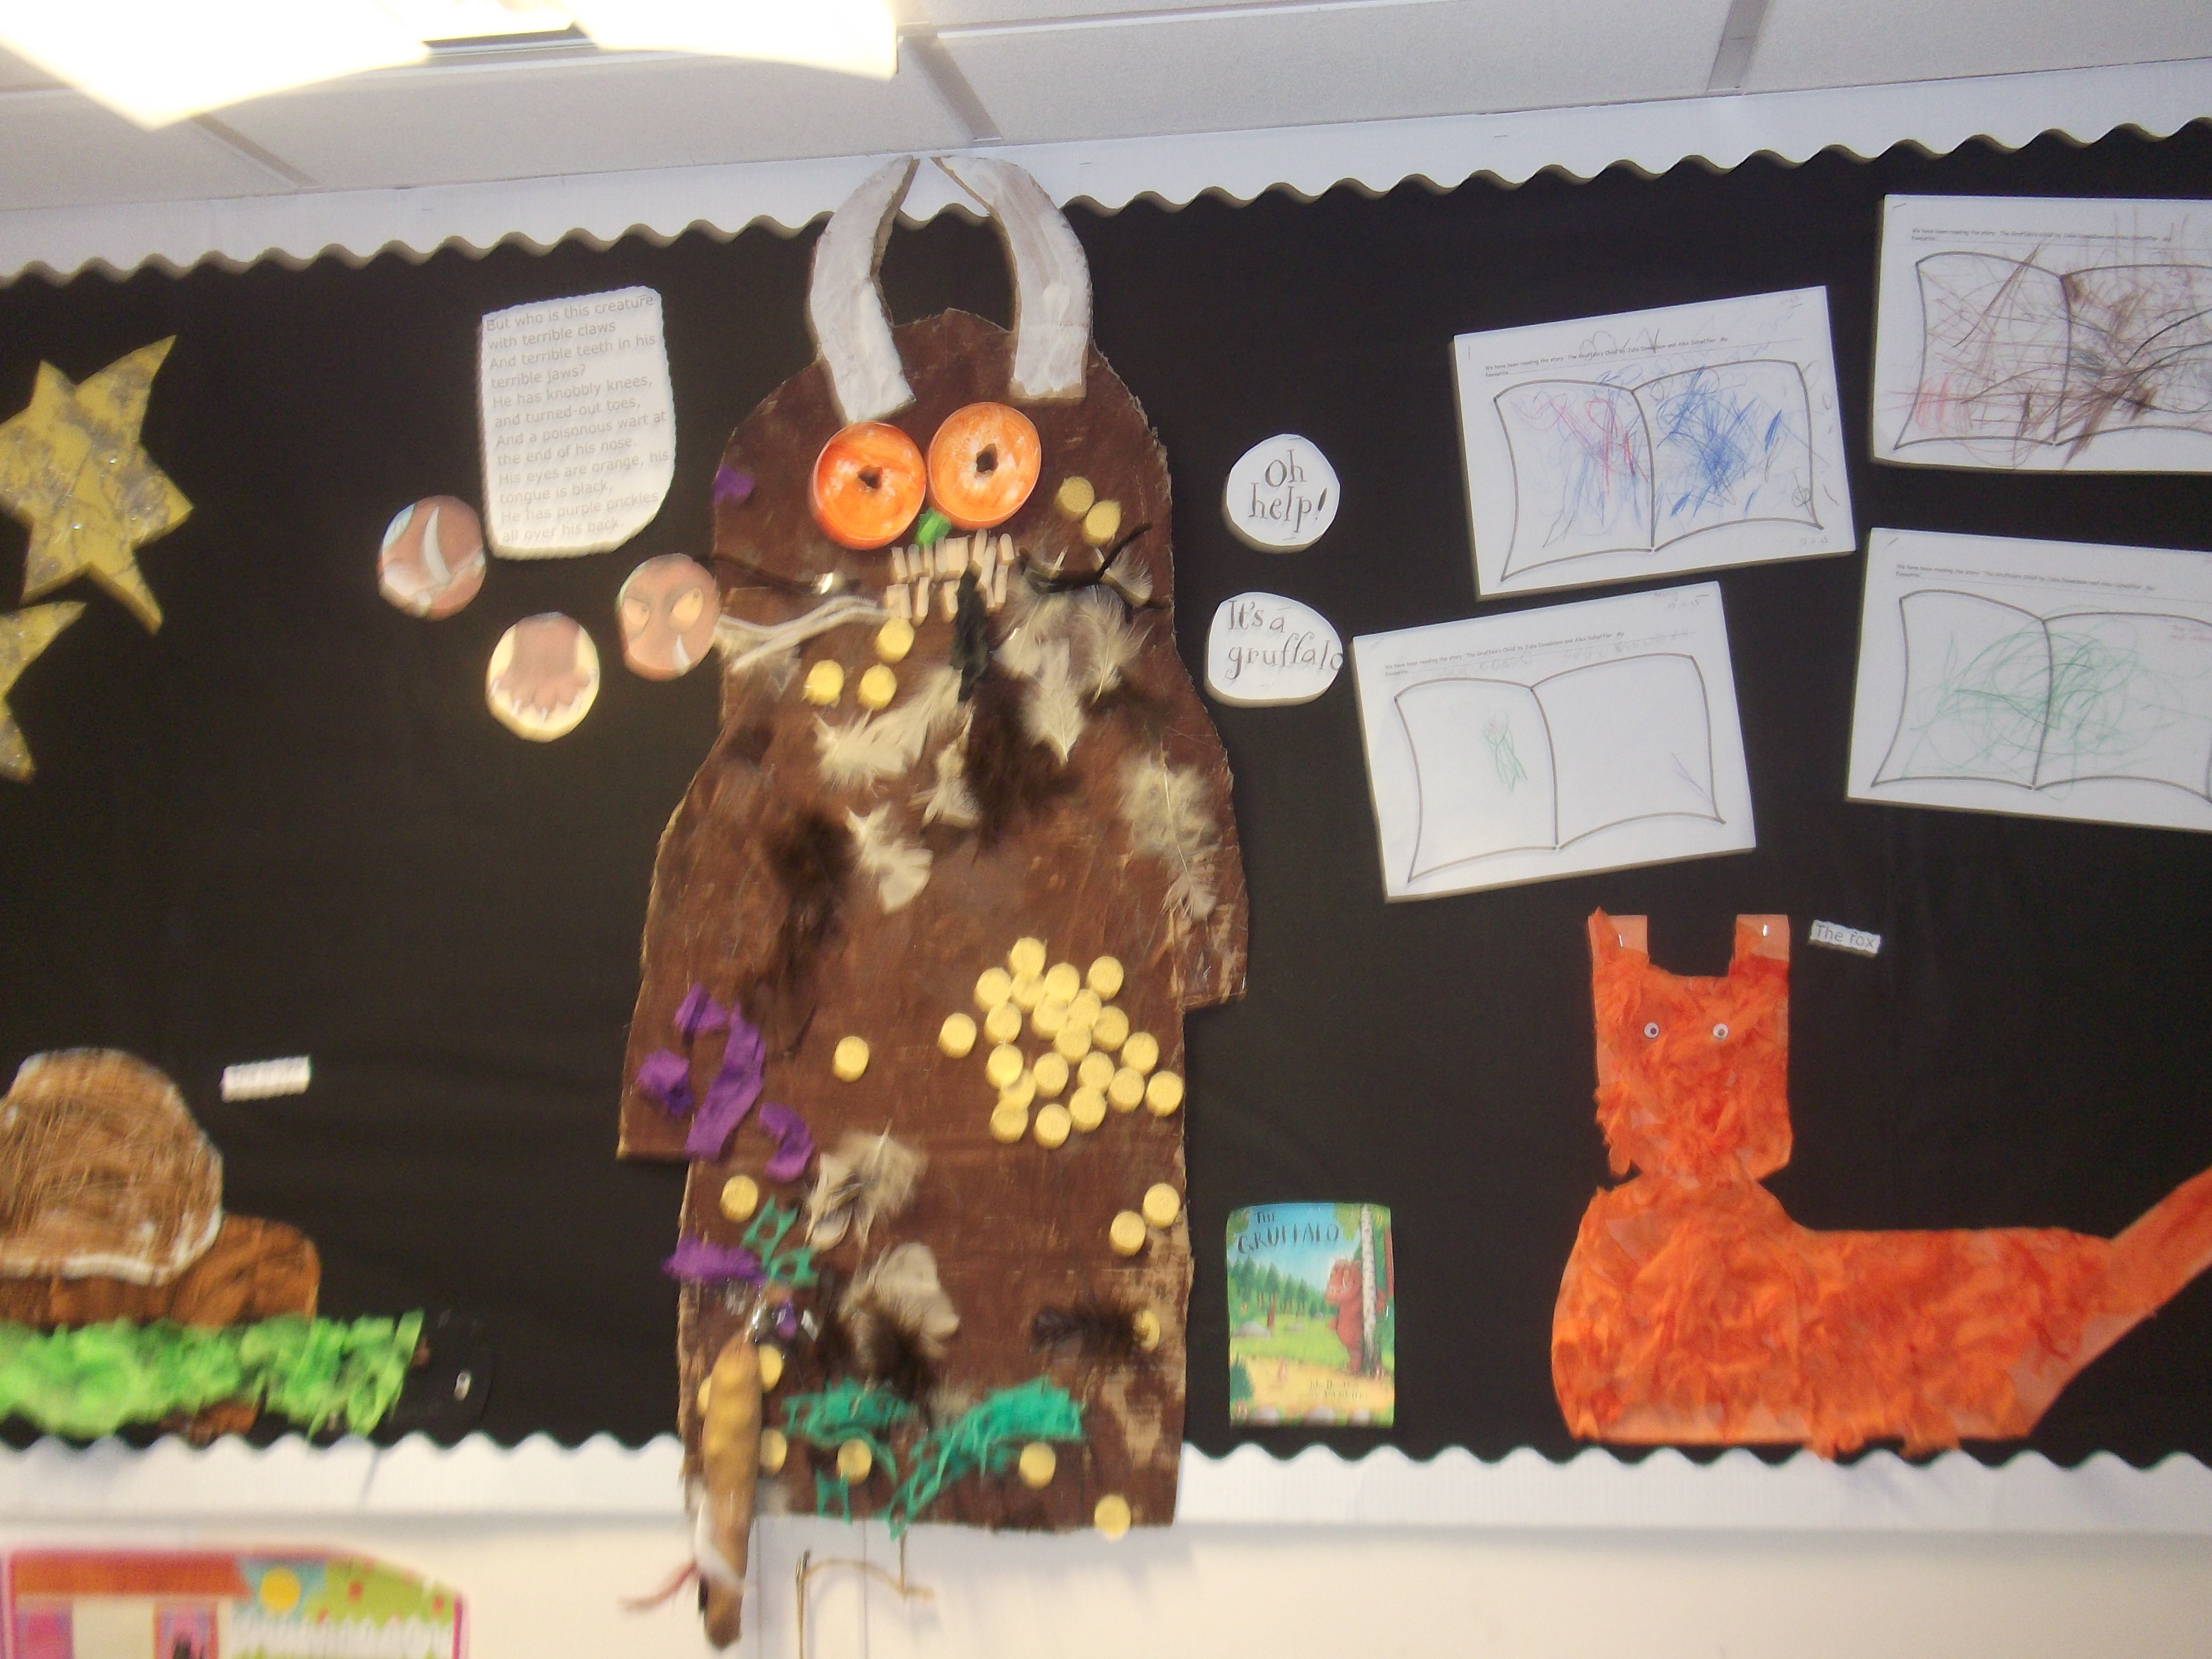 Art trolley inspires Gruffalo display